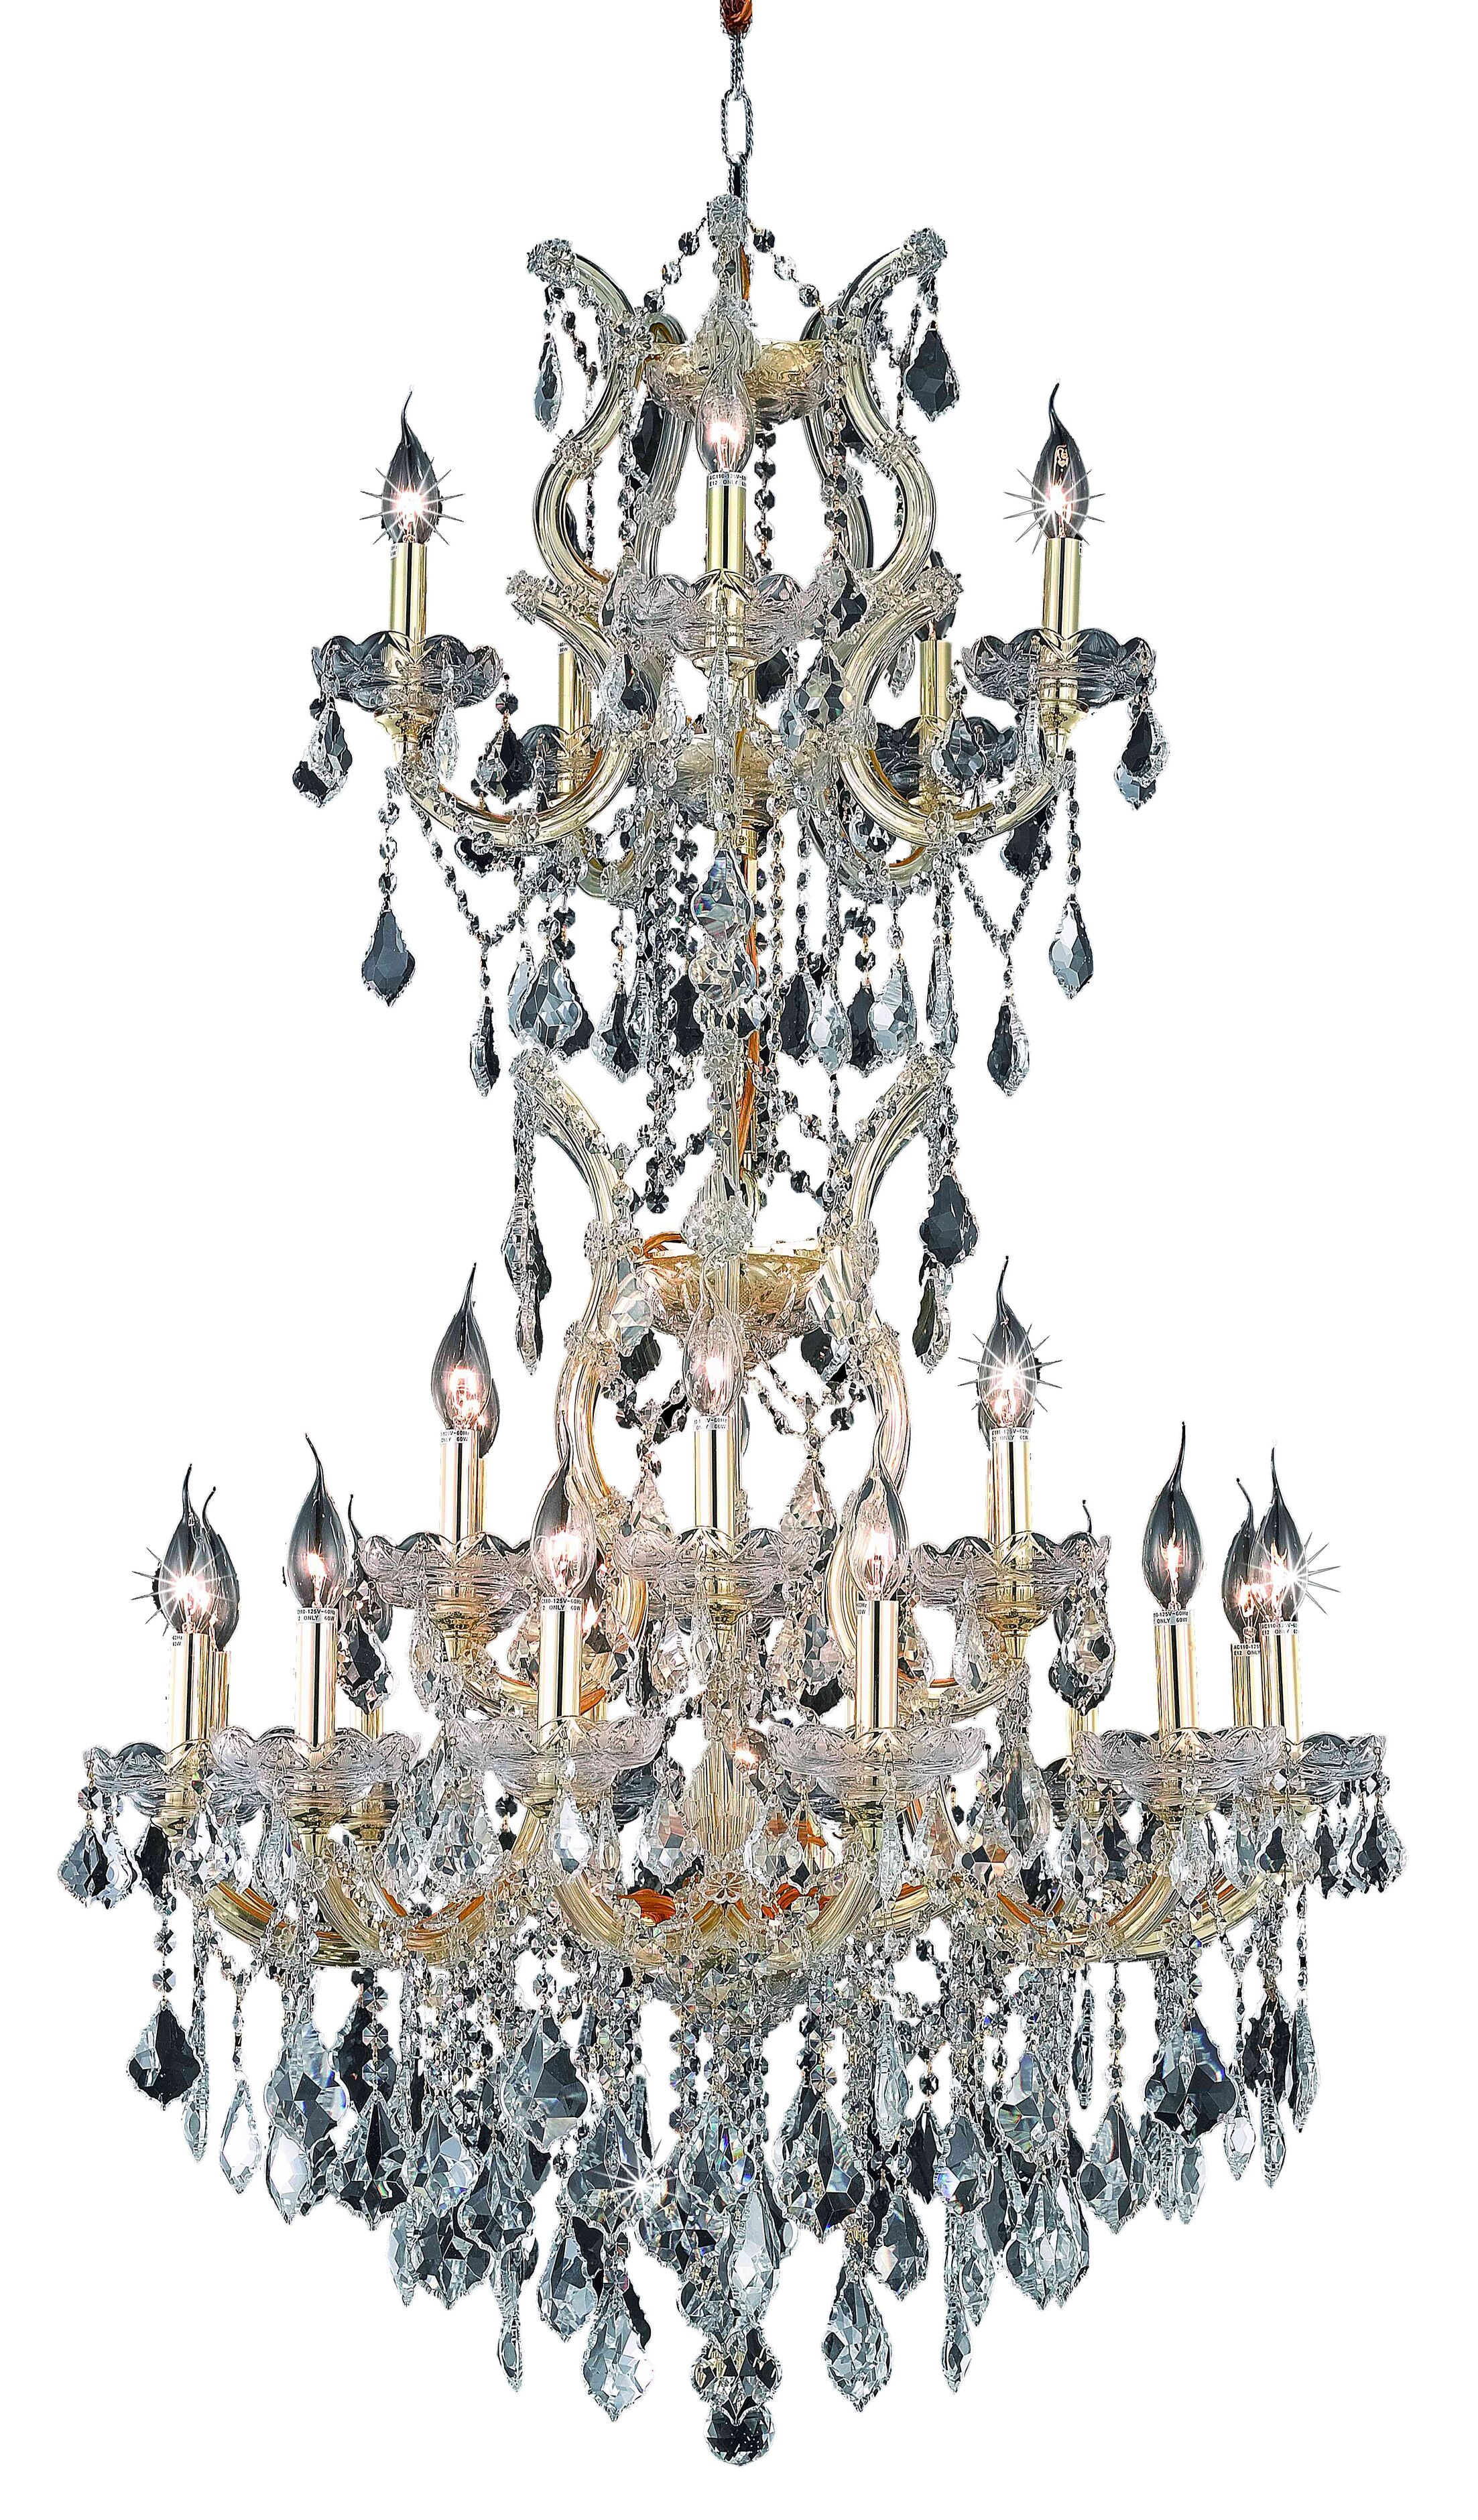 Regina Traditional 25-Light Candle Style Chandelier Finish / Crystal Finish / Crystal Trim: Gold / Crystal (Clear) / Spectra Swarovski